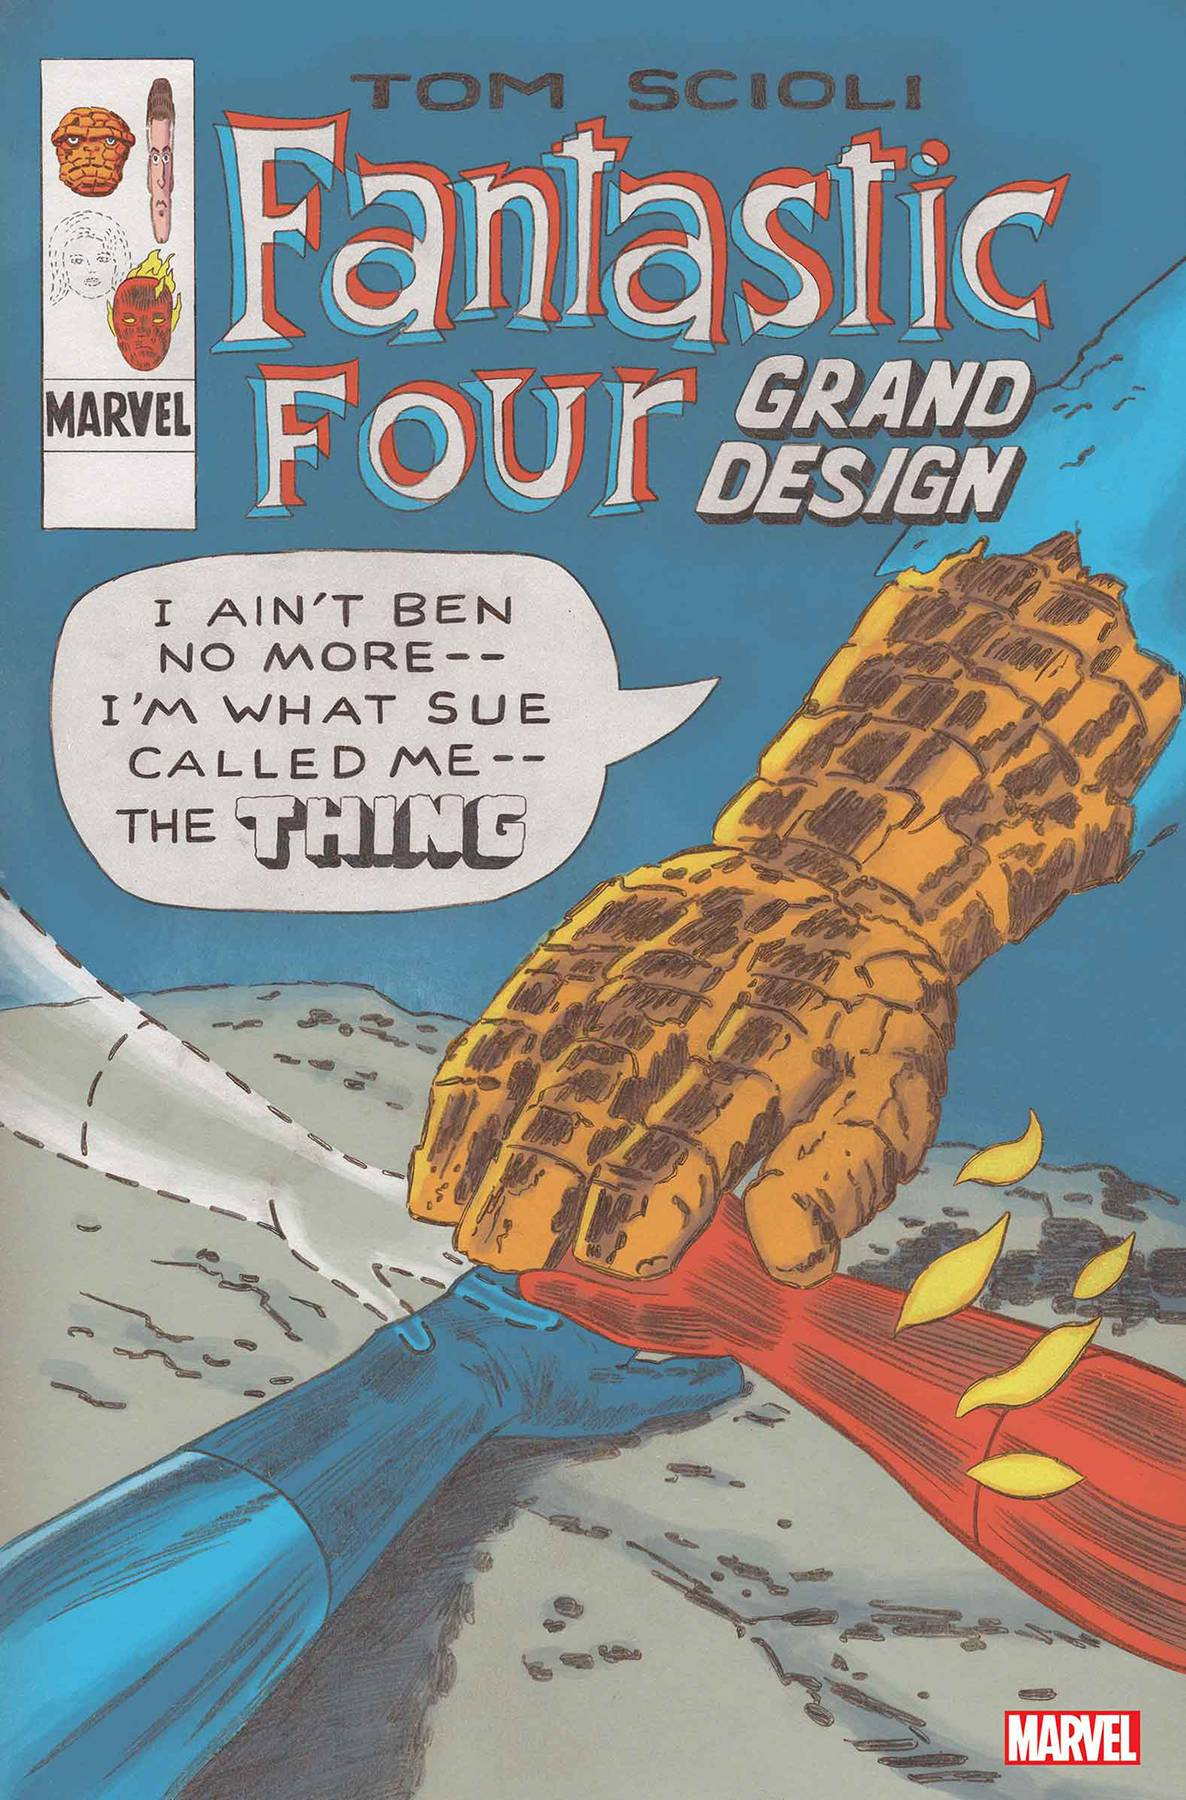 FANTASTIC FOUR GRAND DESIGN 1 of 2.jpg